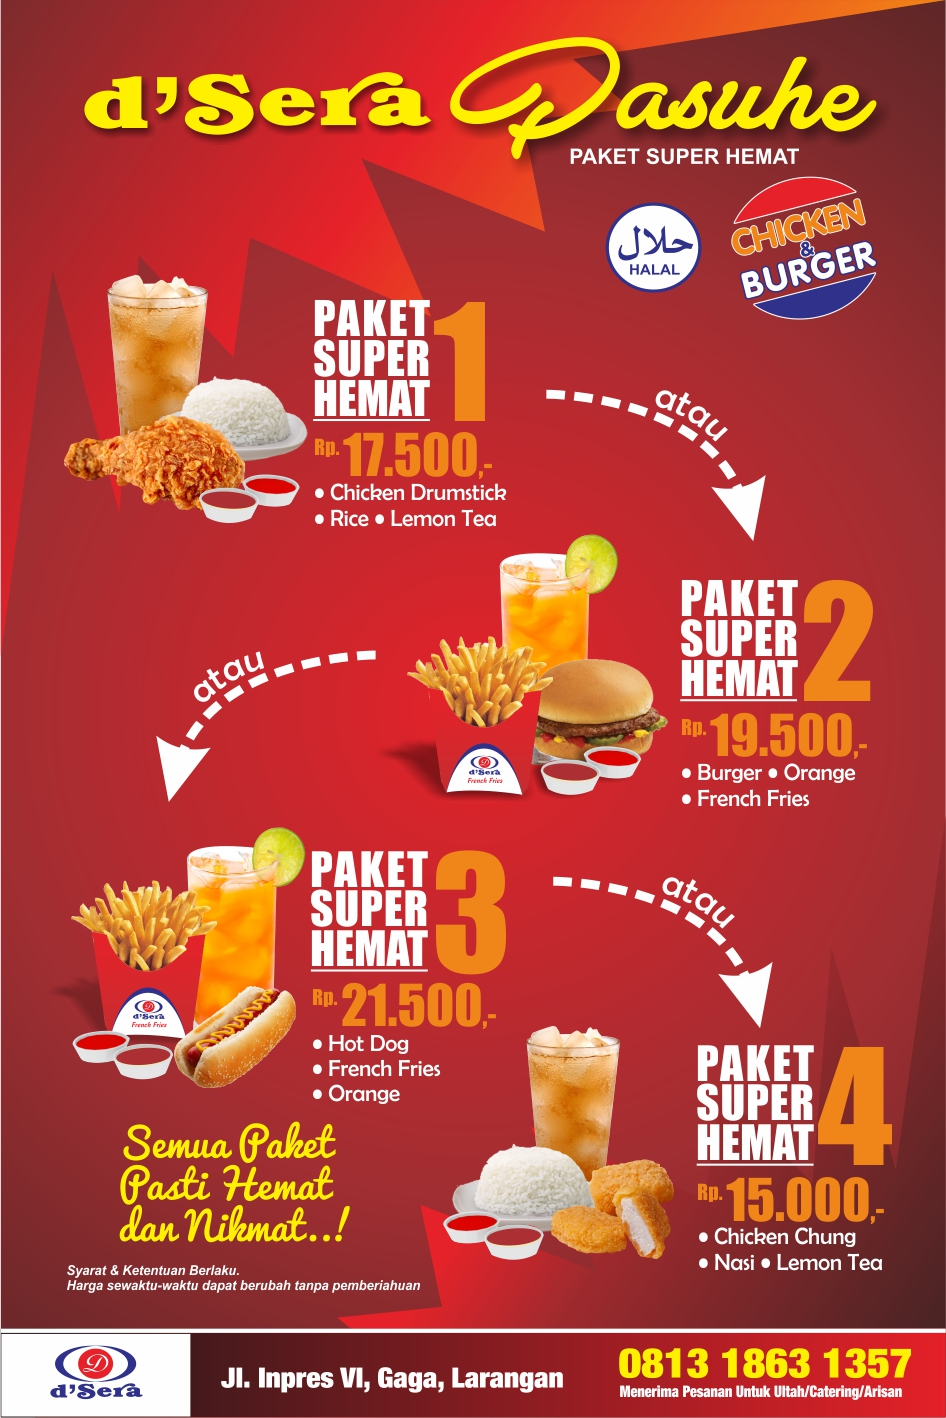 Desera_Paket_Chicken